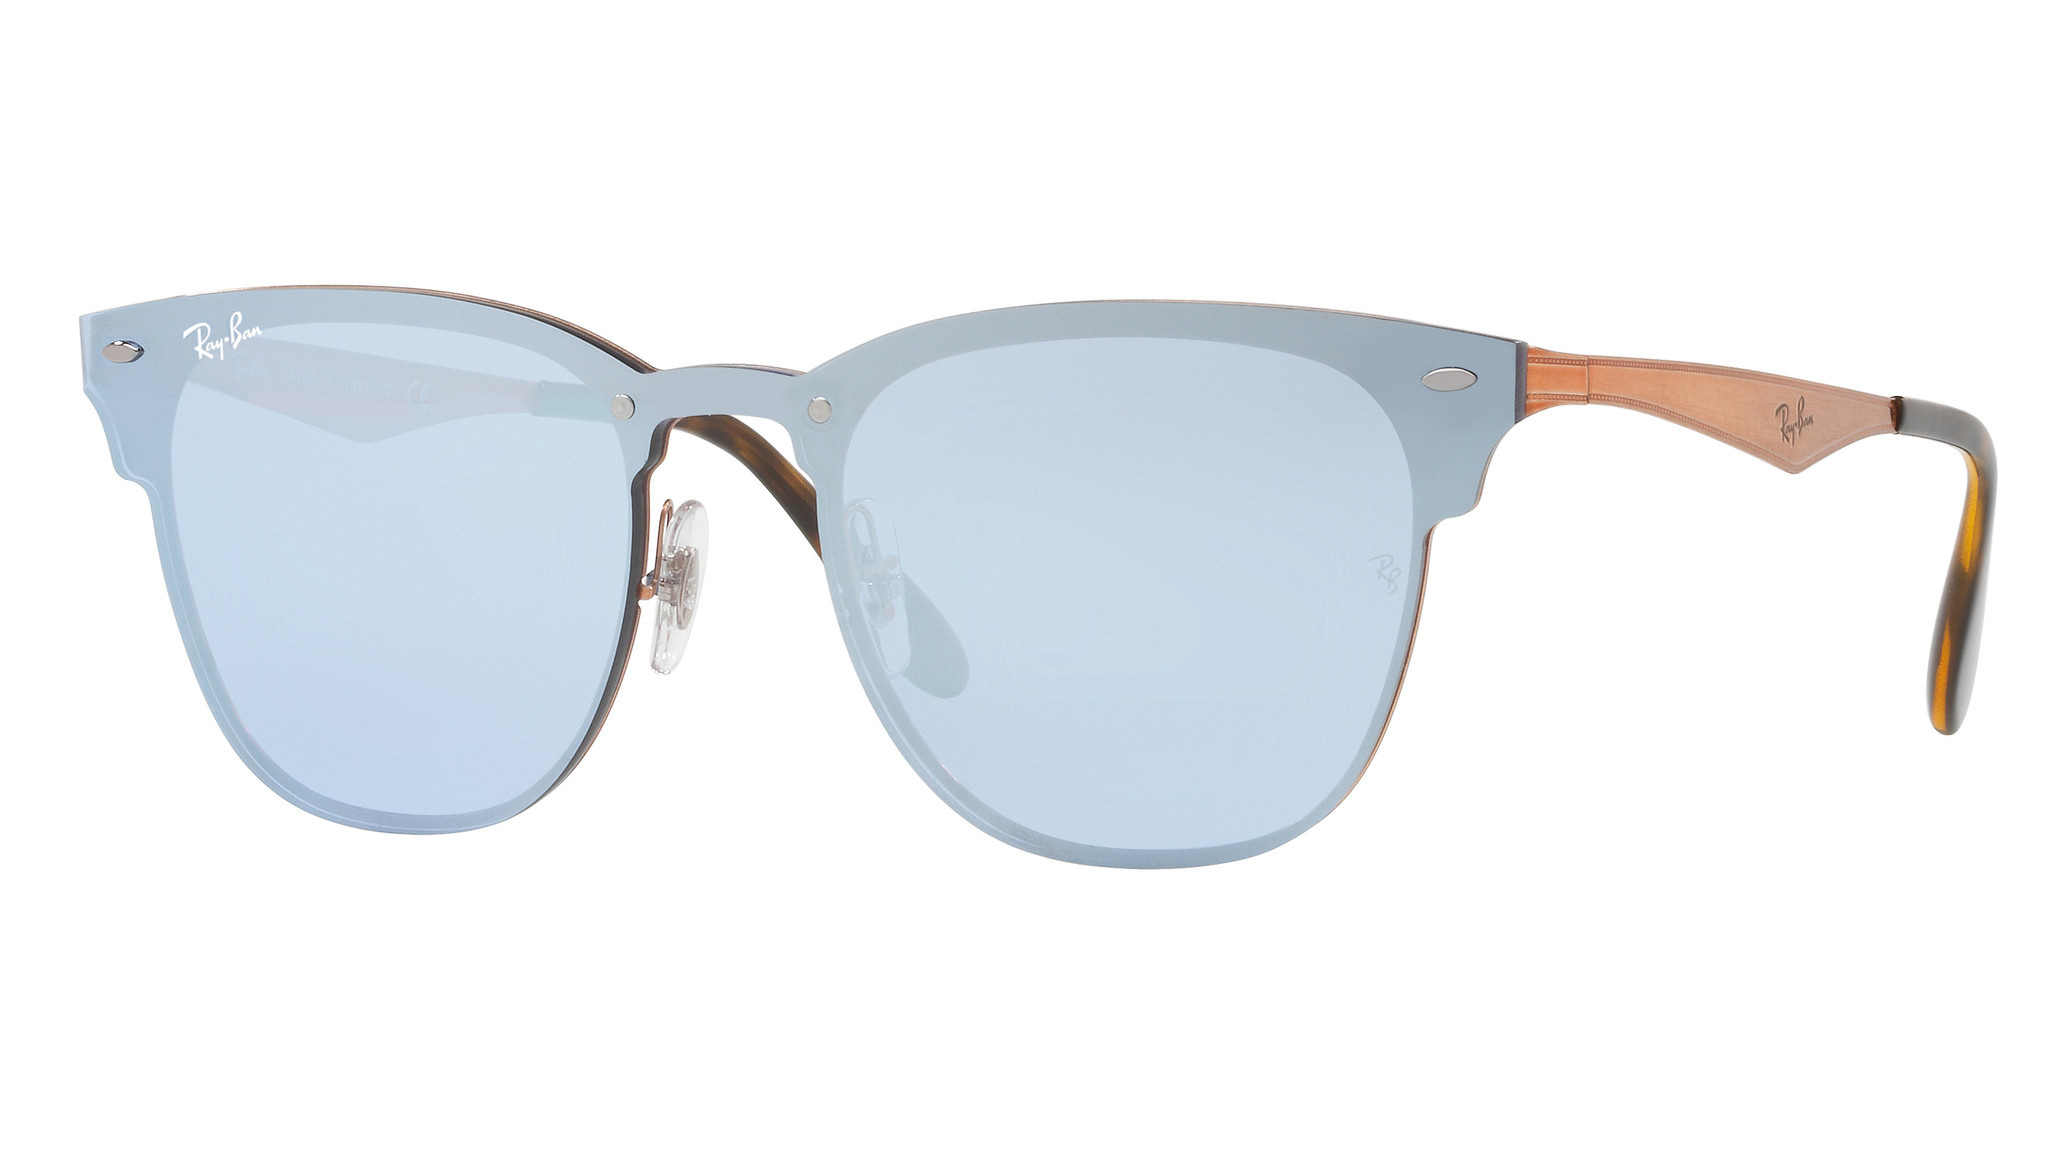 Ray-Ban Blaze Clubmaster in several colors including dark violet ($195, ray-ban.com)